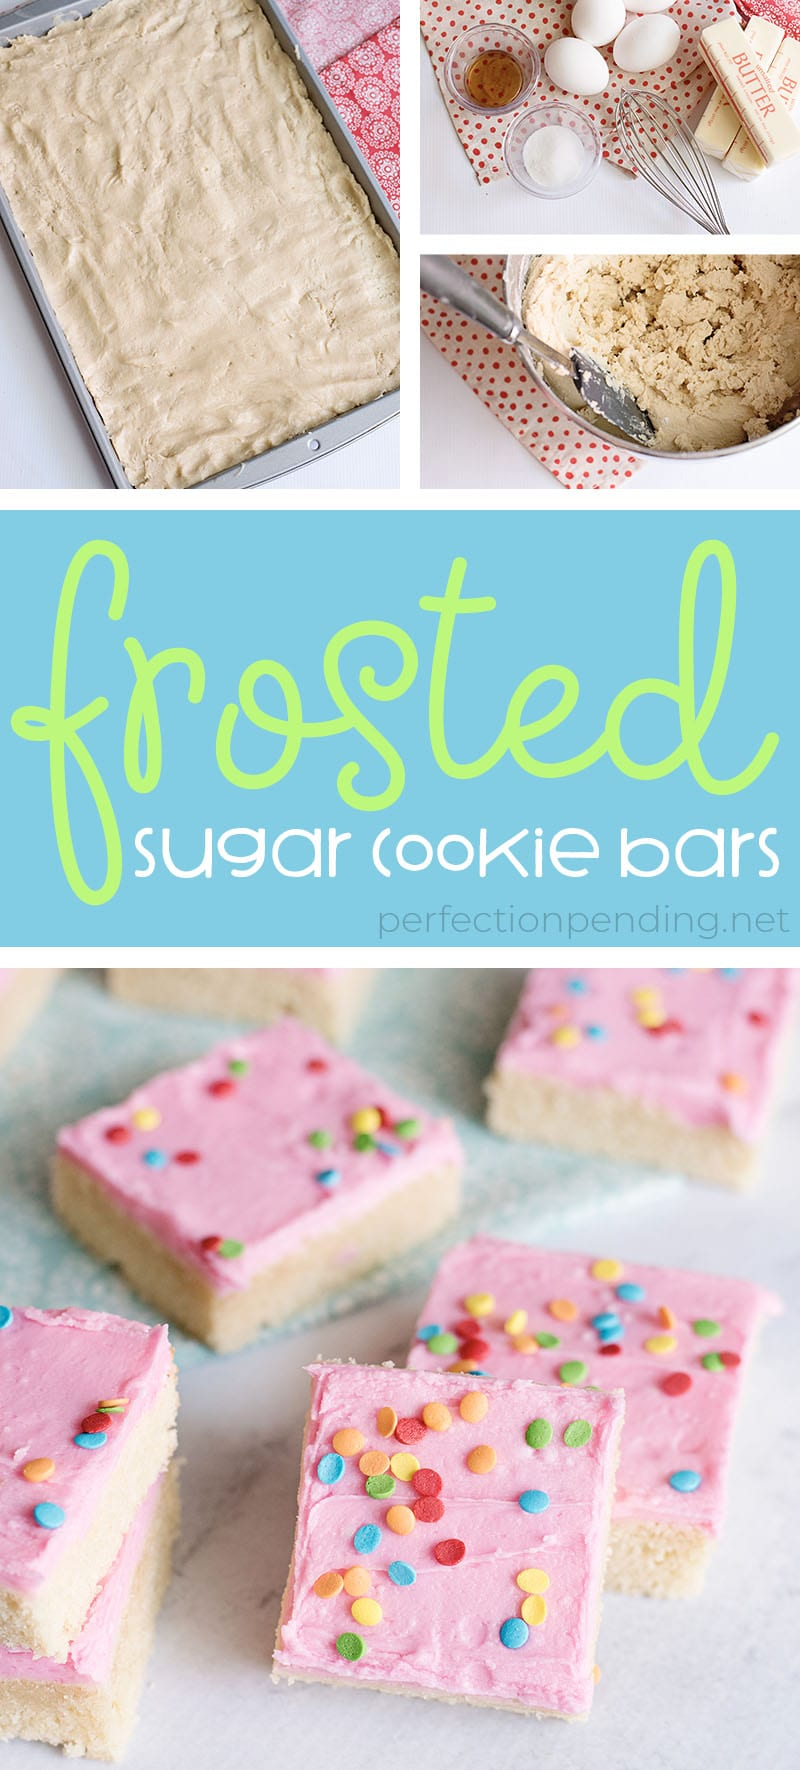 These frosted sugar cookie bars are THE BEST sugar cookie bars and an absolute must try! Between the sweet sugar cookie and the sweet fun frosting and sprinkles, these are such a delicious sweet treat! Not to mention they are some perfect soft and chewy cookie bars - my favorite type of cookie! Just scroll down below to find the full pan sugar cookie recipe! Super soft sugar cookies piled with delicious frosting and lots of sprinkles! Tastes just like a Lofthouse Sugar cookie, and so easy to bake since they're in bar form. #sugarcookie #sugarcookies #sugarcookierecipe #sugarcookiebars #cookierecipe #softsugarcookie #lofthousecookies